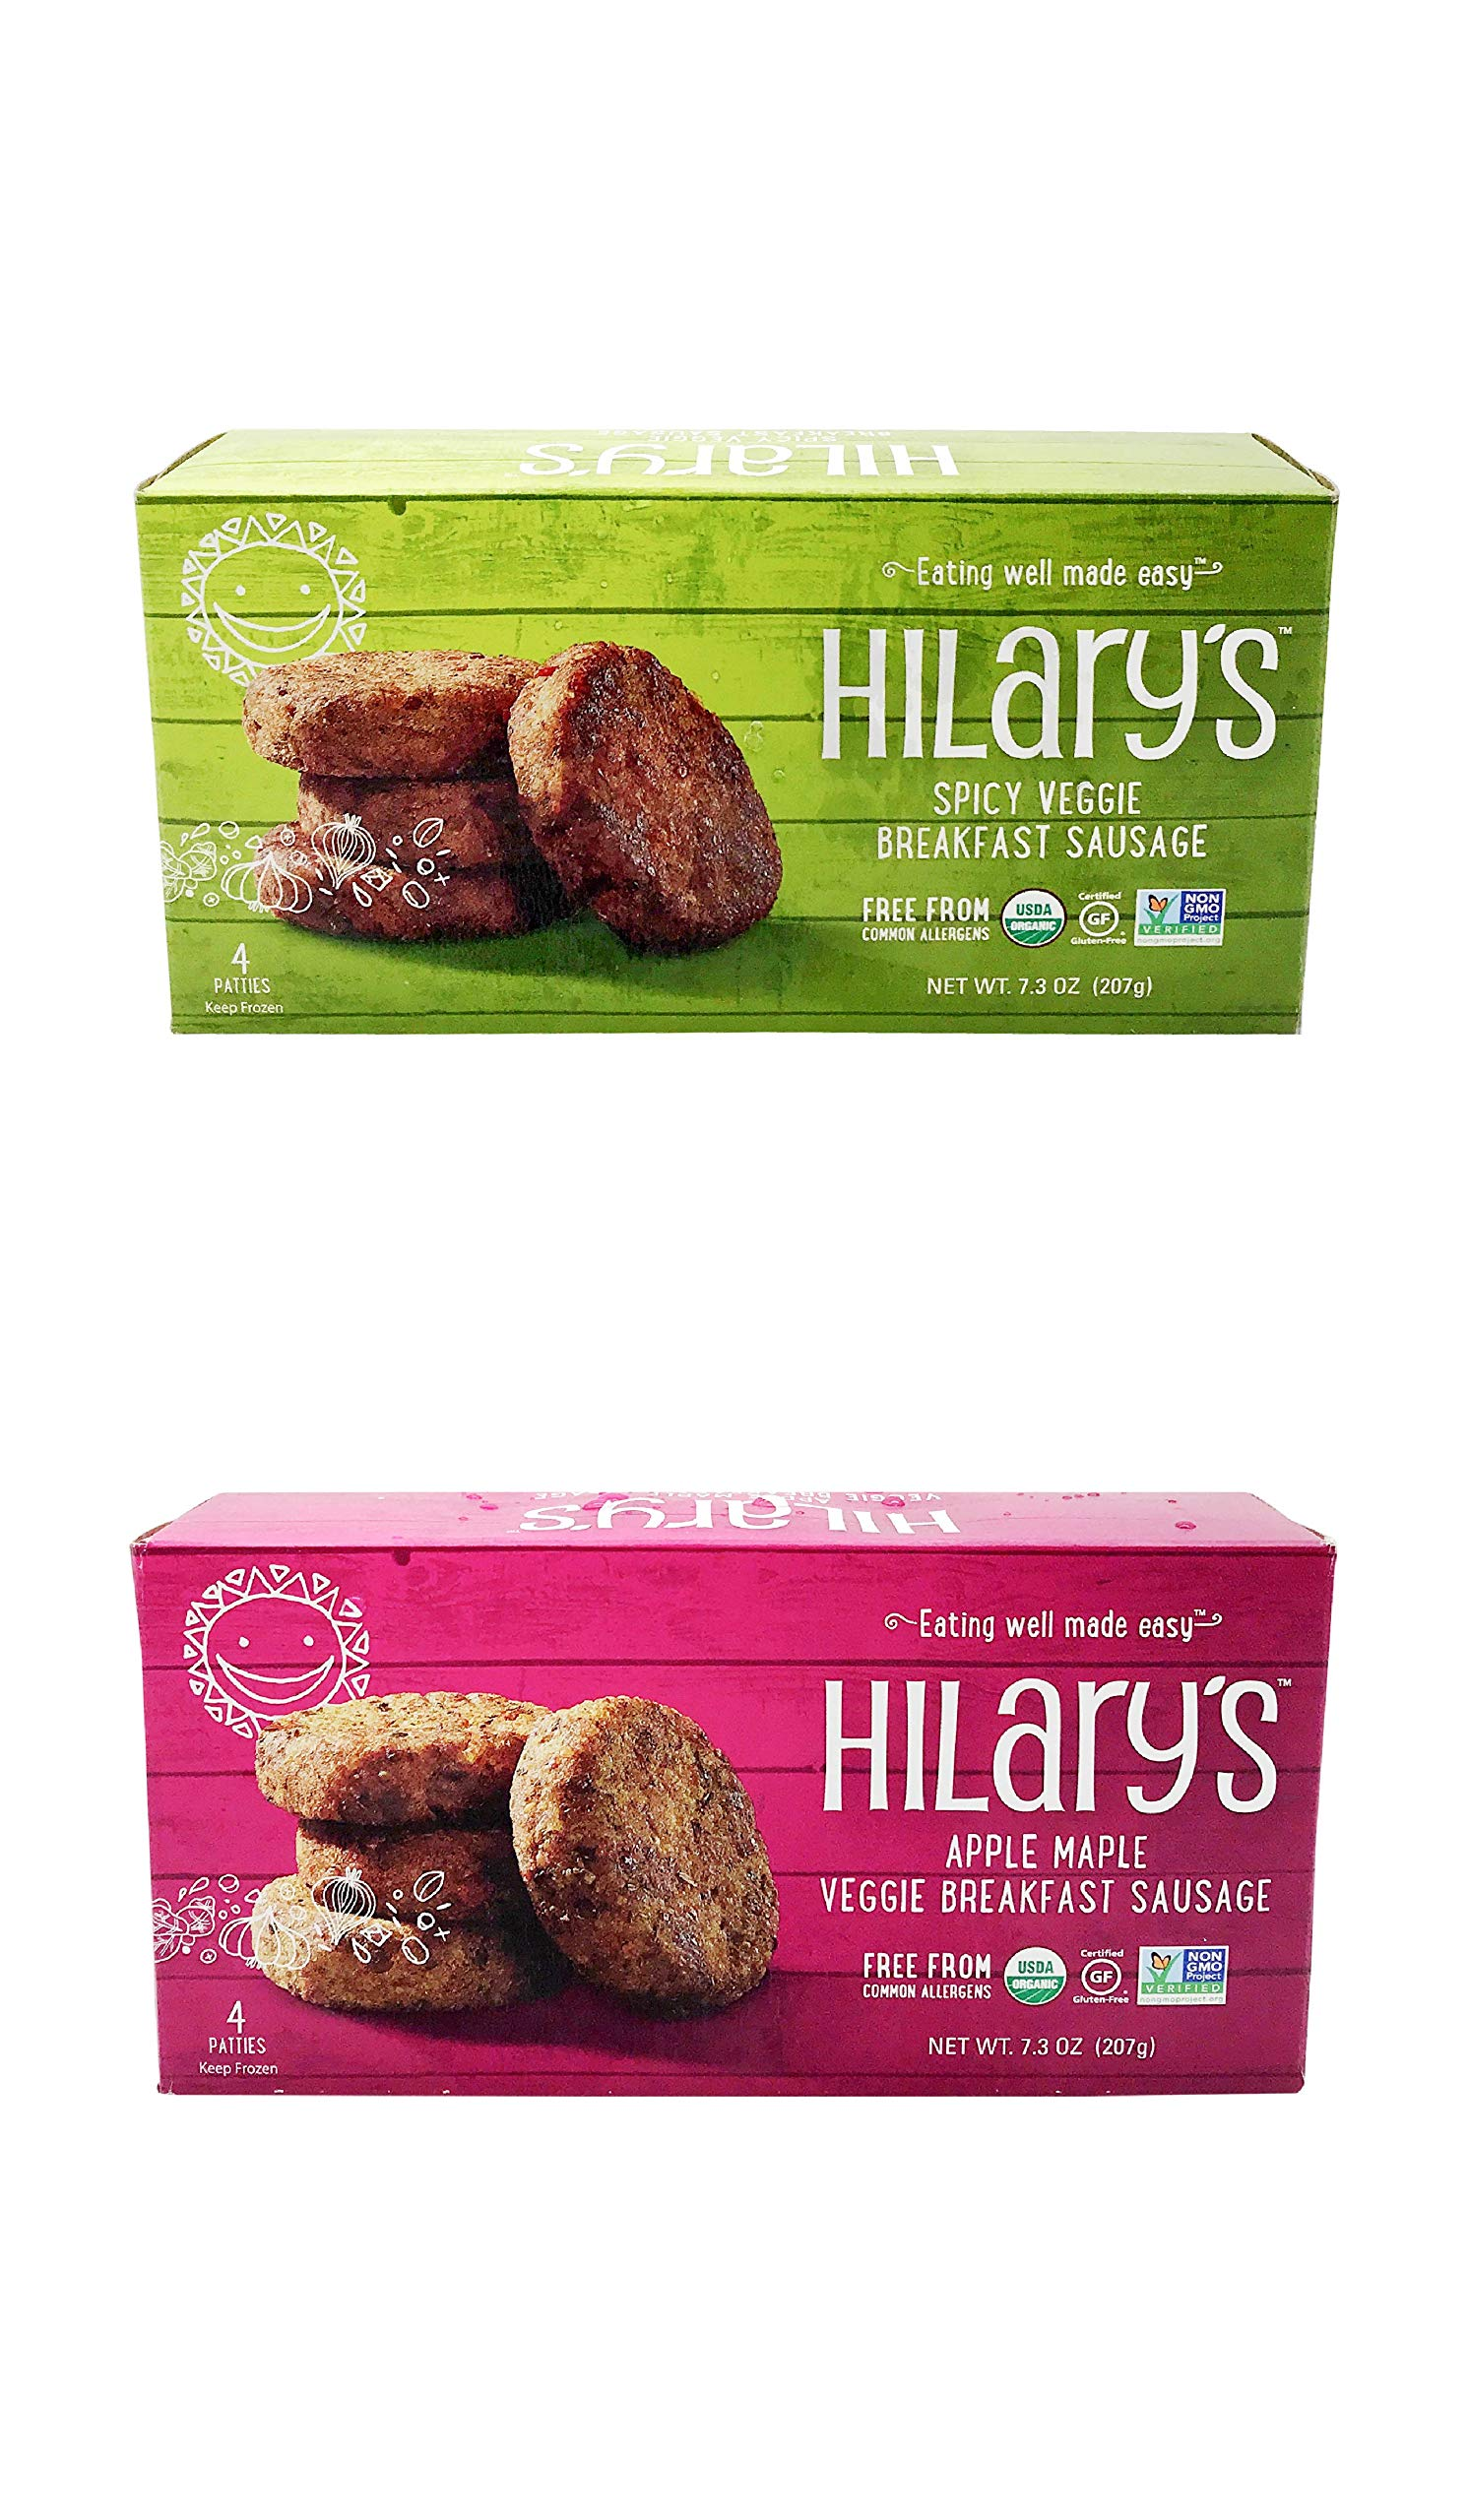 Hilary's Breakfast Sausage Variety Pack, 3 of each Flavor (6 Pack) by Hilary's (Image #1)